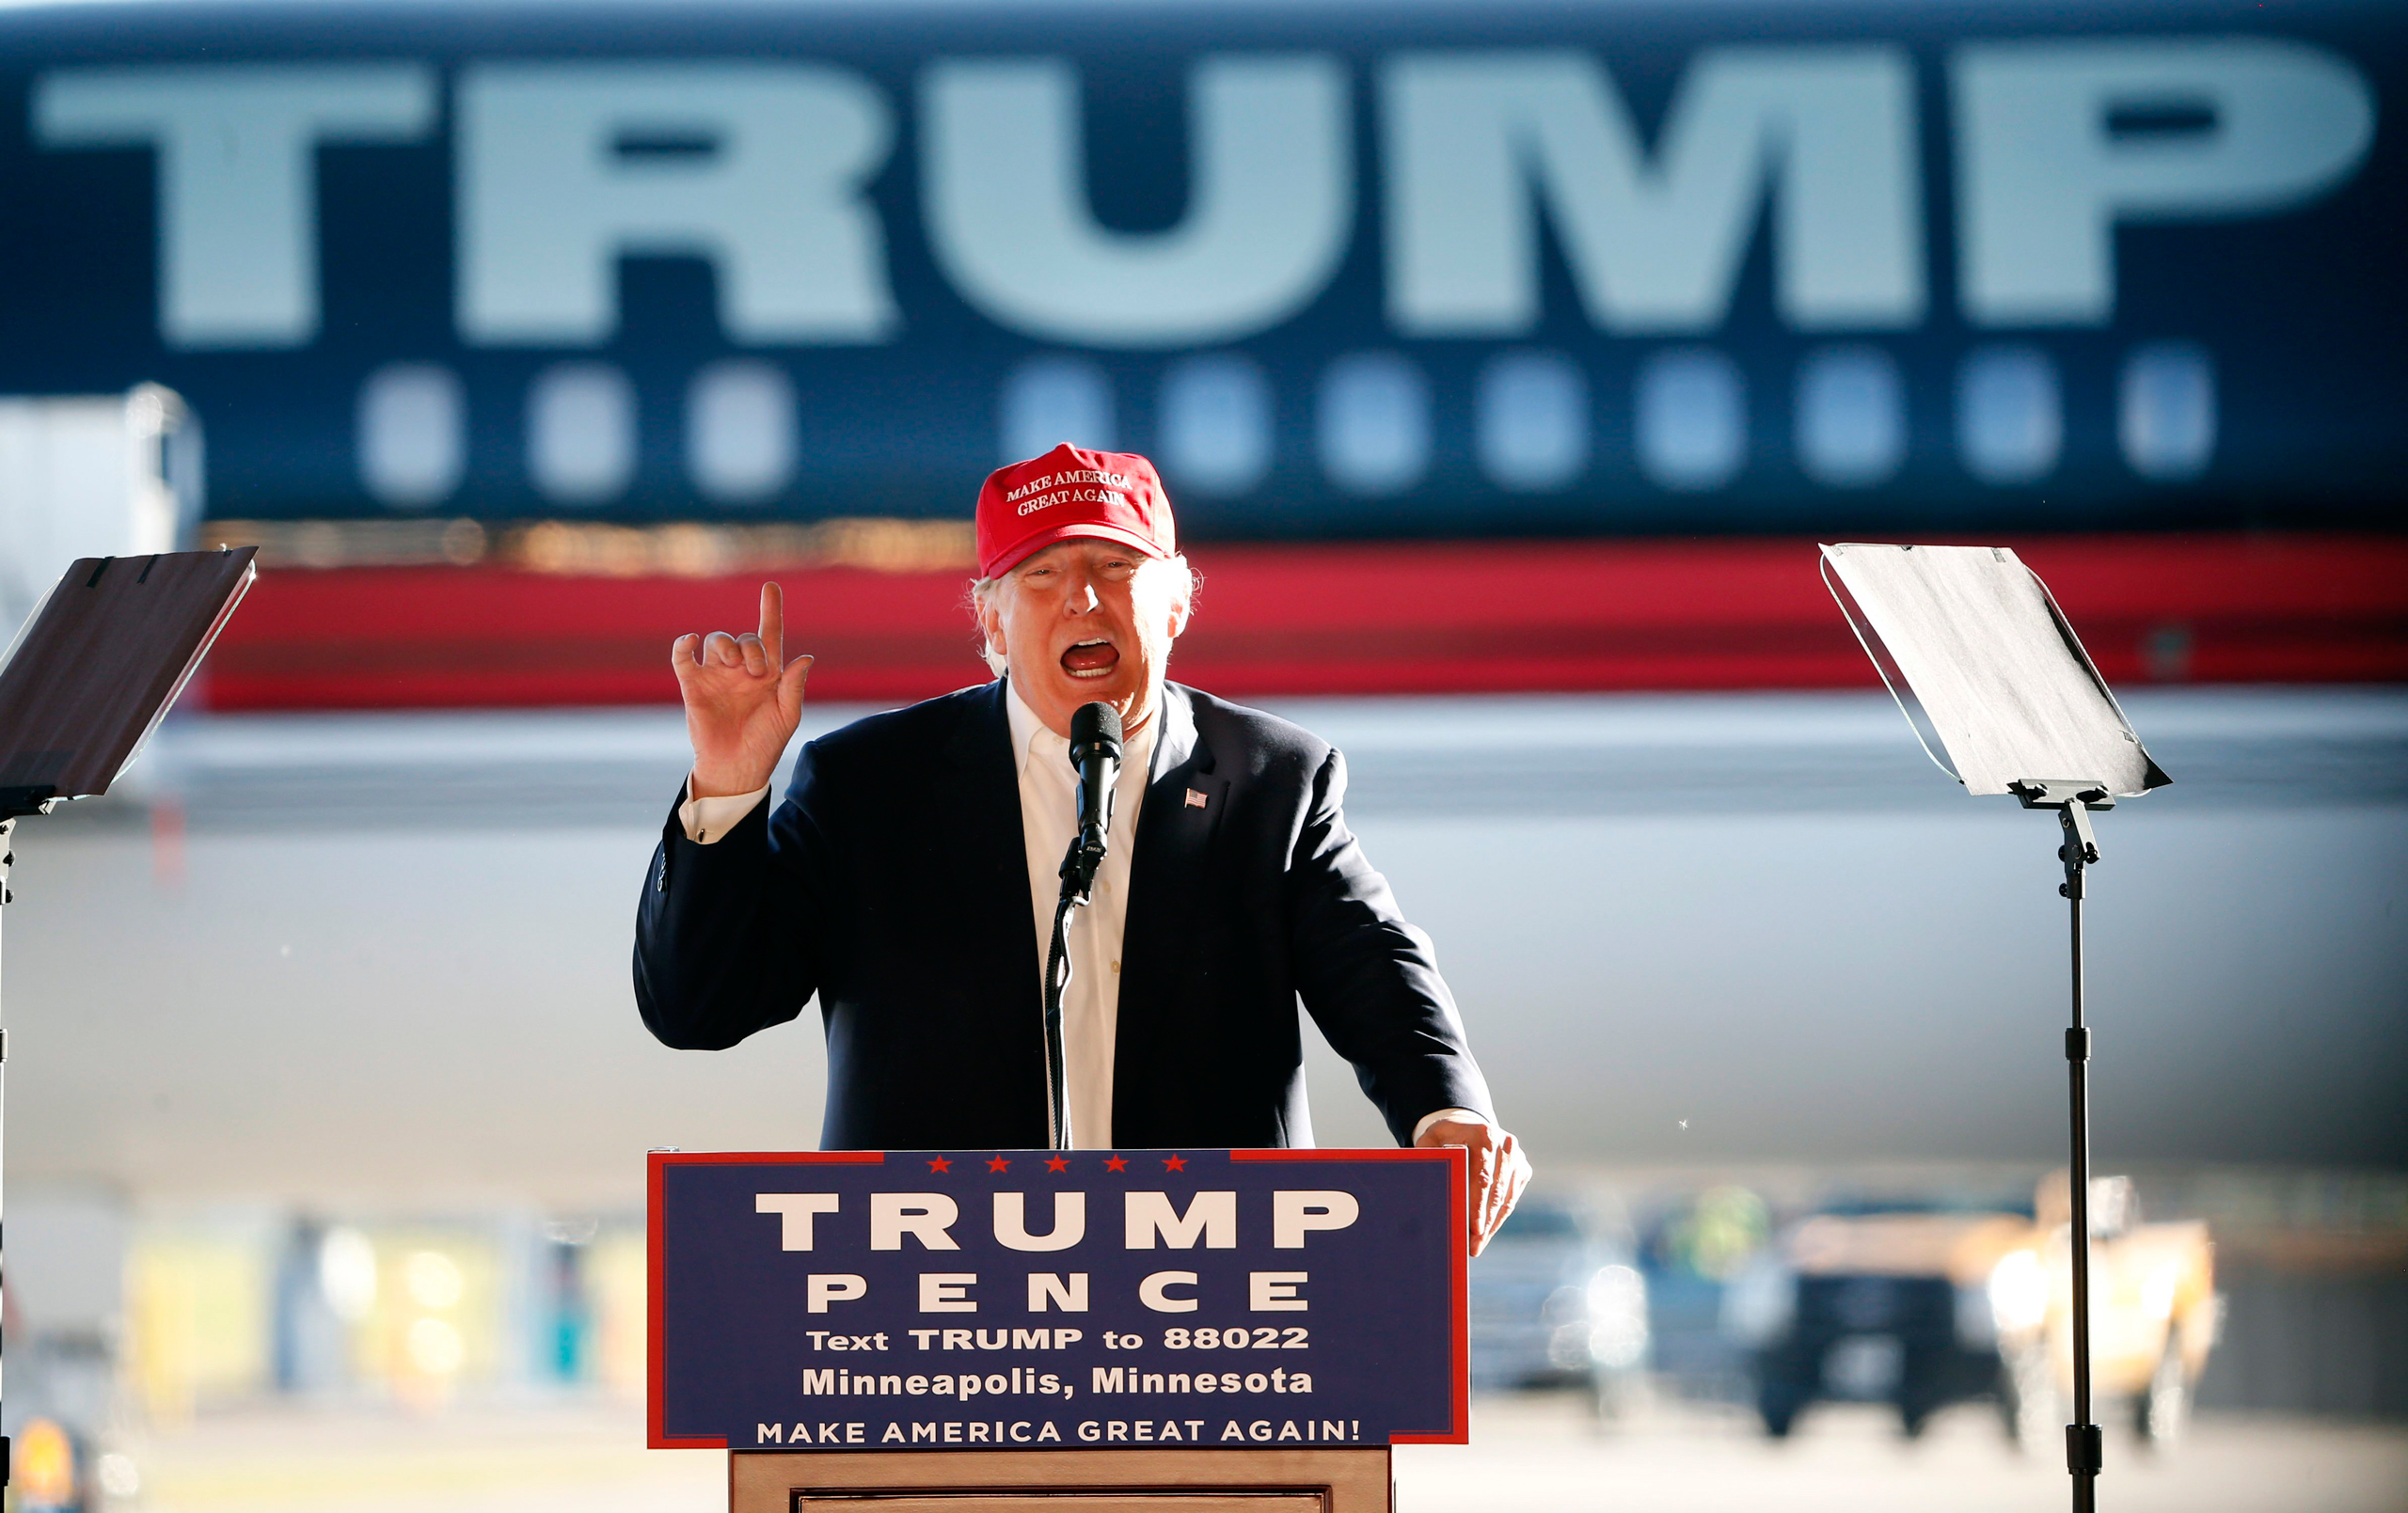 Donald Trump addresses the crowd during a campaign stop at the Minneapolis International Airport in Minneapolis on Nov. 6, 2016.